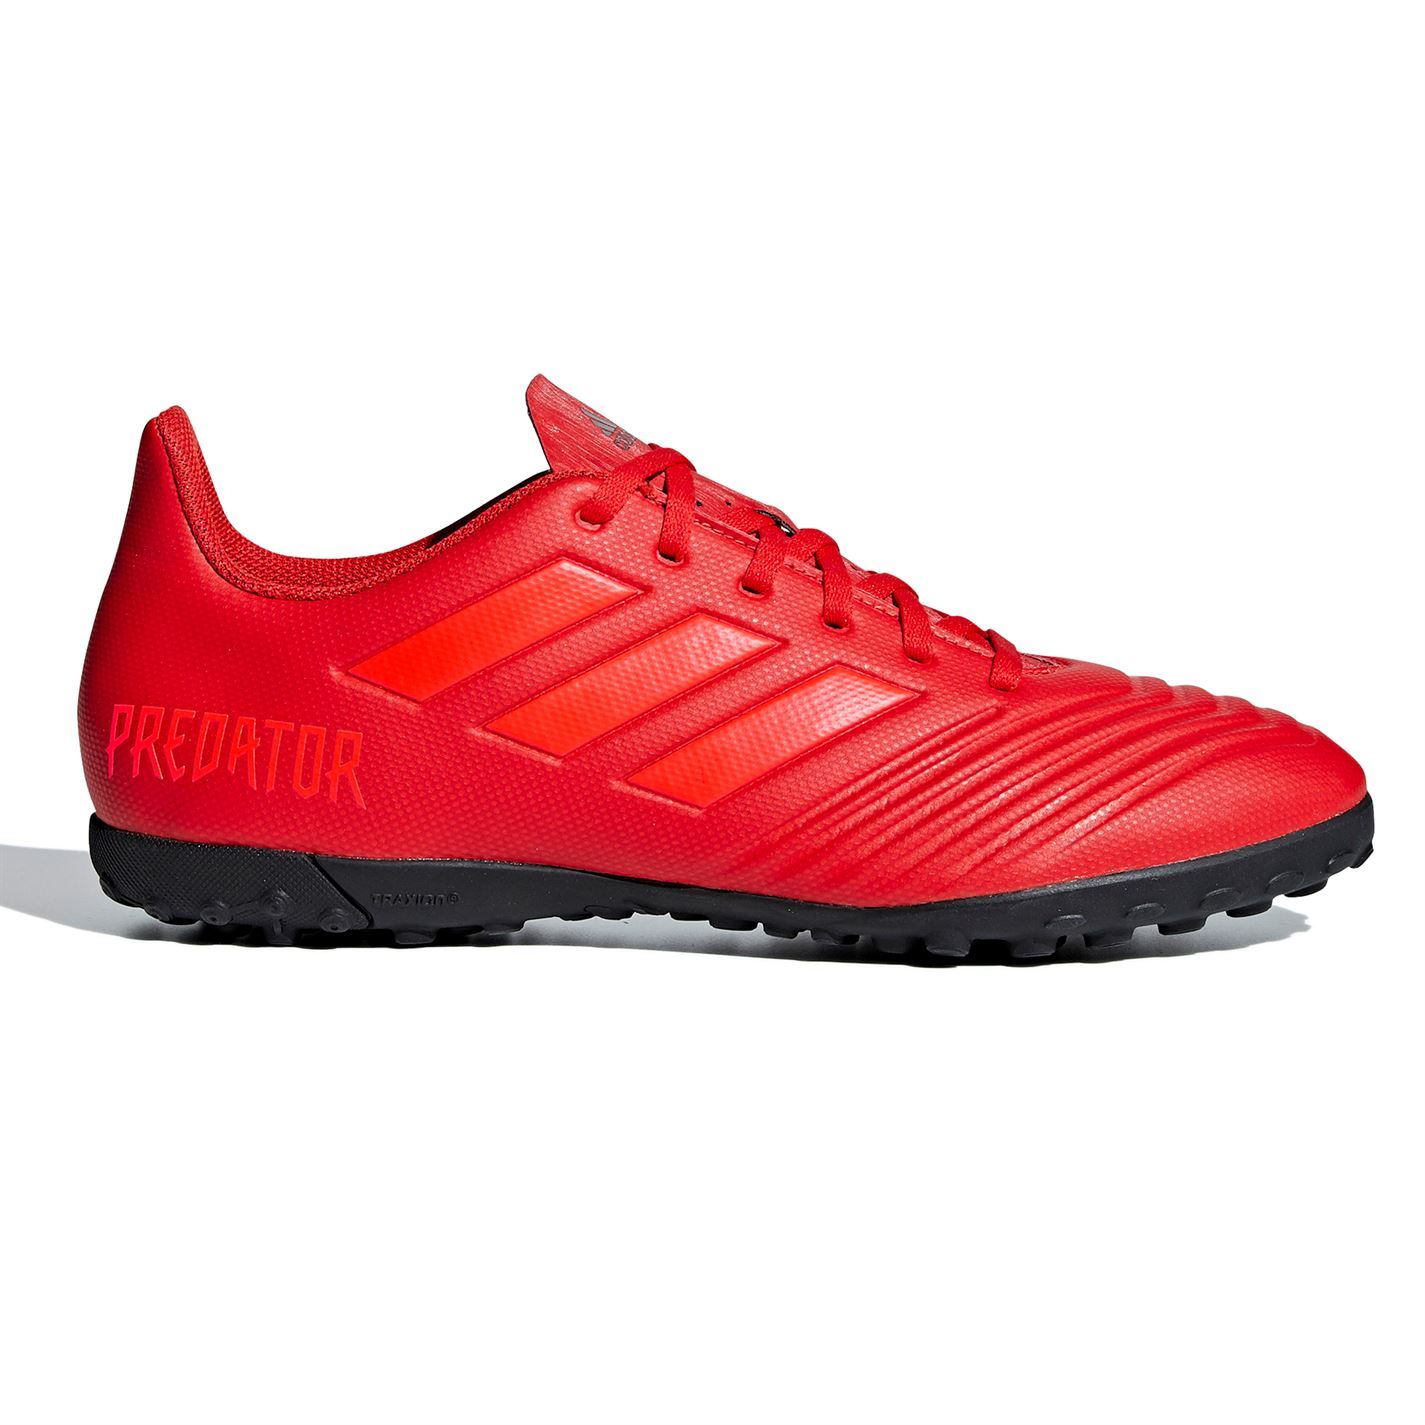 reputable site 379f4 d1e84 Details about adidas Predator 19.4 Astro Turf Football Trainers Mens Red  Soccer Shoes Sneakers